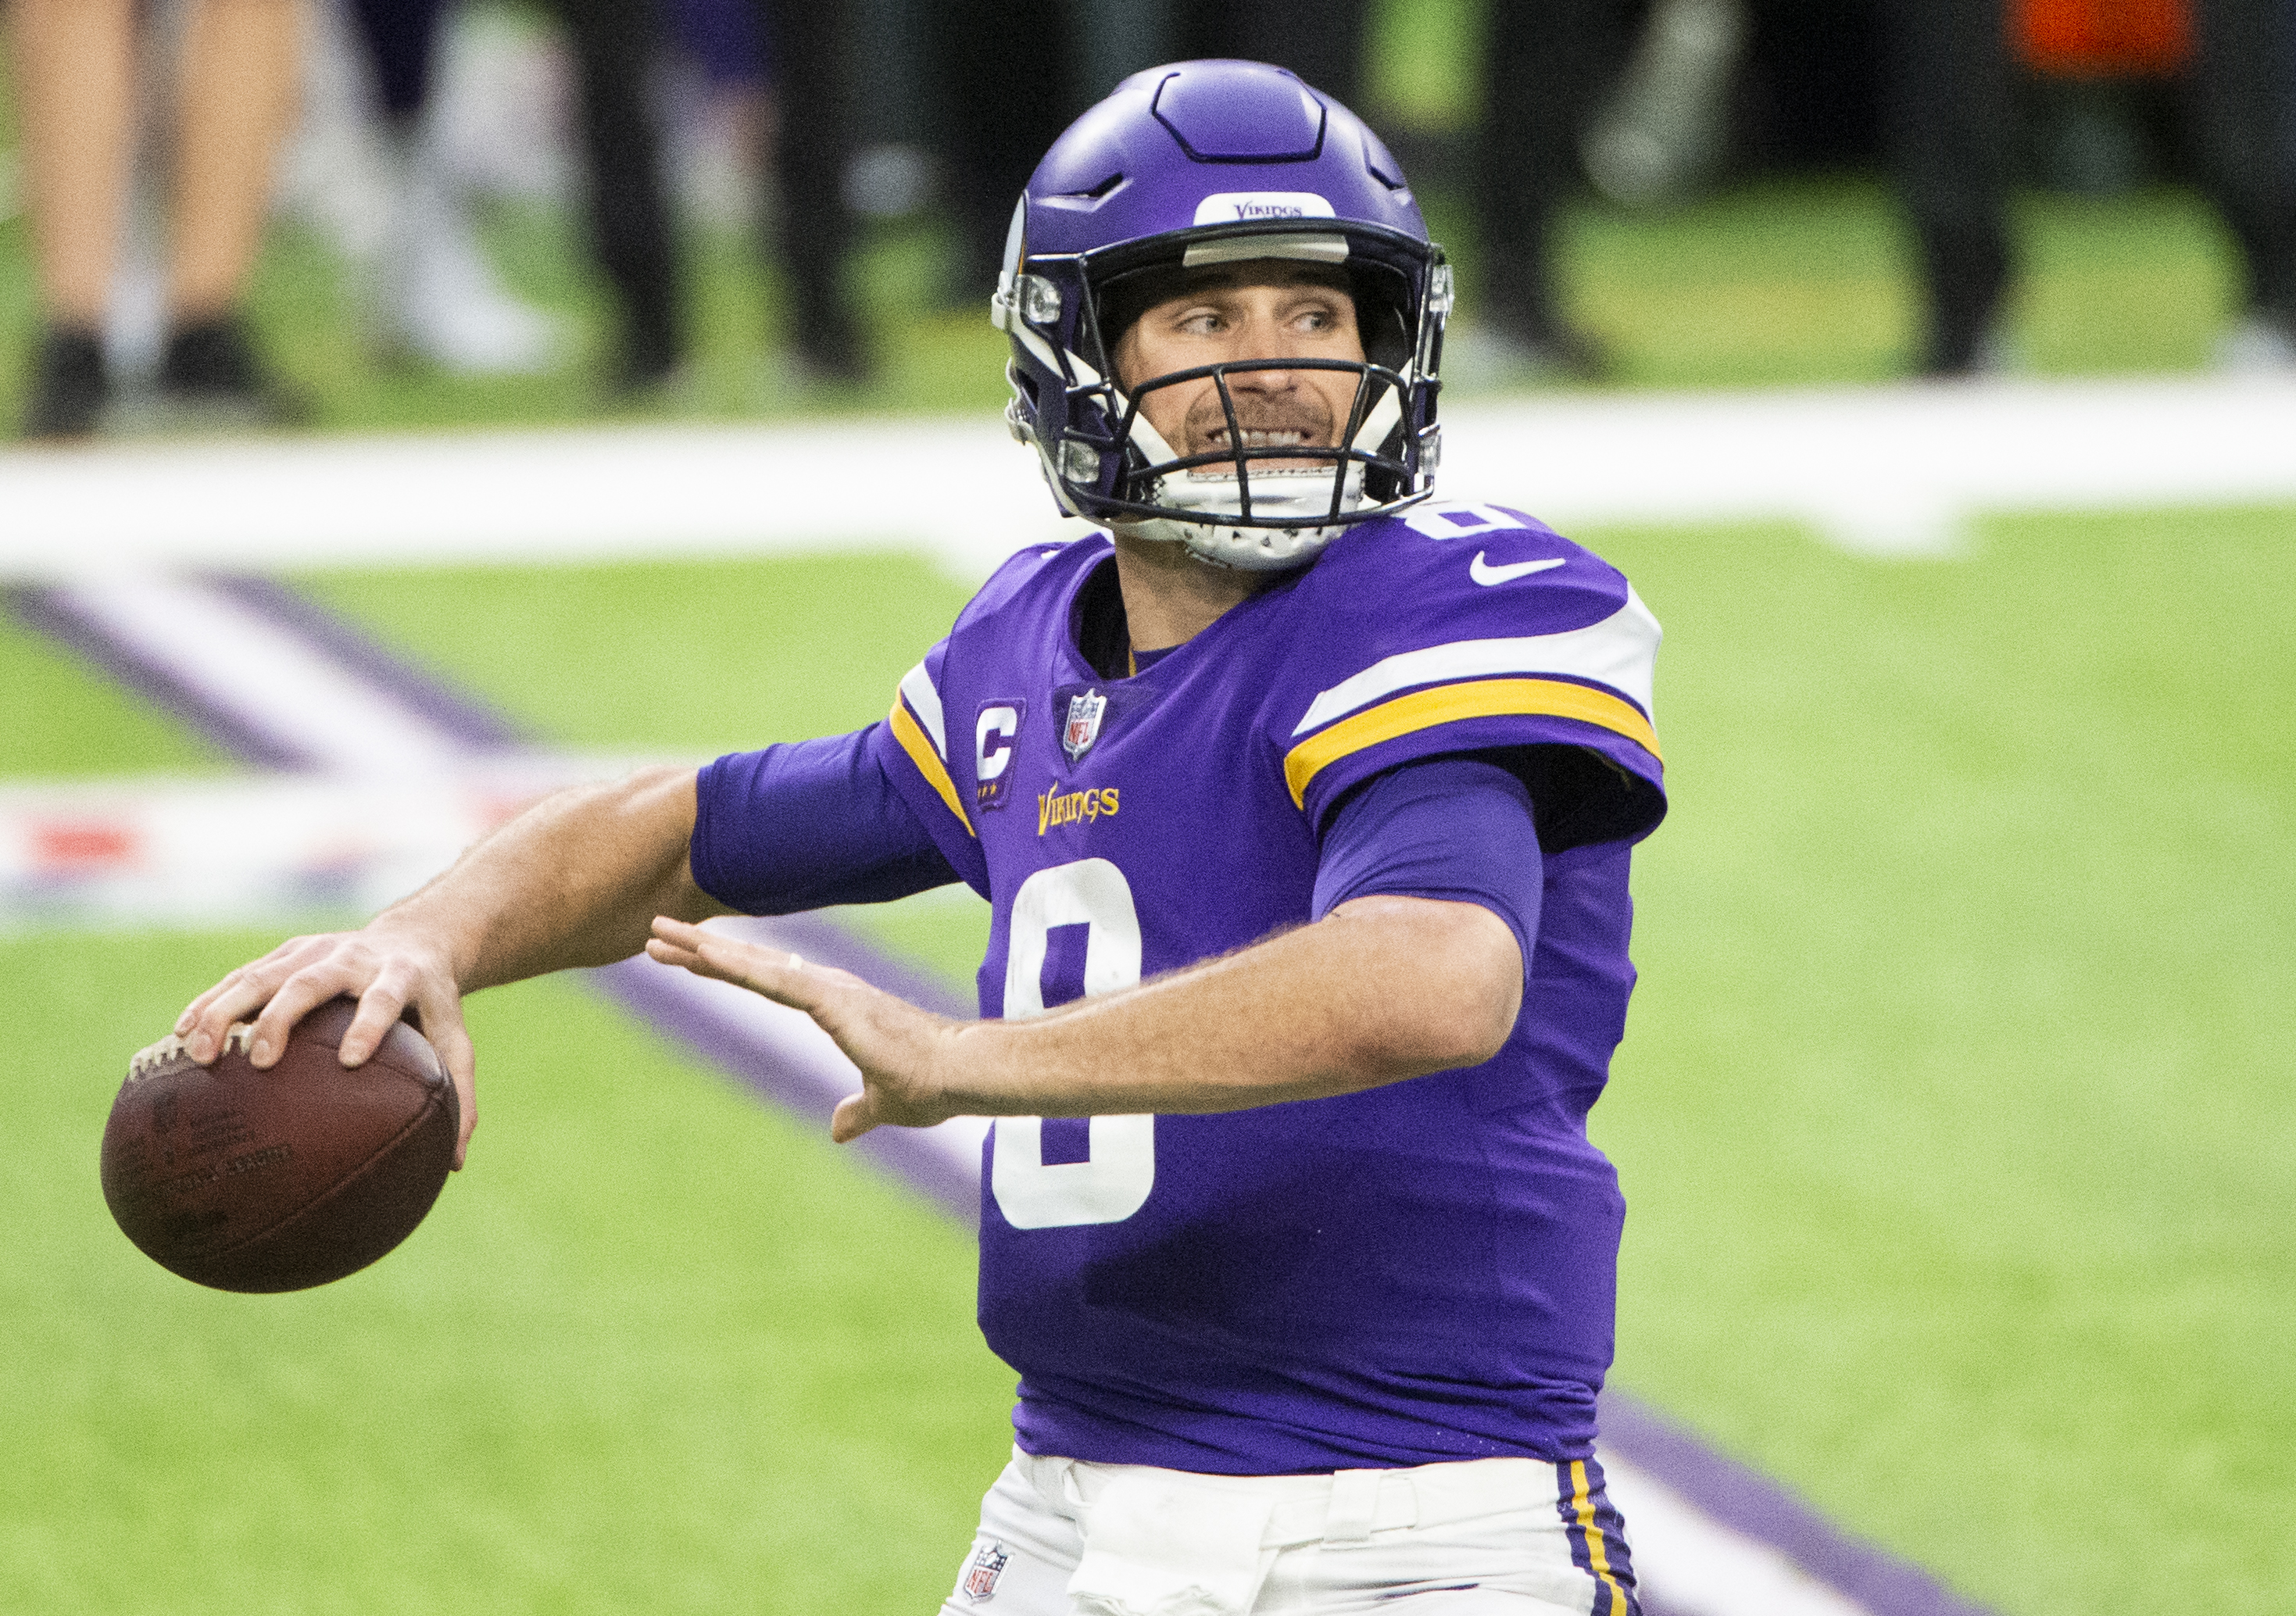 Kirk Cousins #8 of the Minnesota Vikings passes the ball in the fourth quarter of the game against the Chicago Bears at U.S. Bank Stadium on December 20, 2020 in Minneapolis, Minnesota.